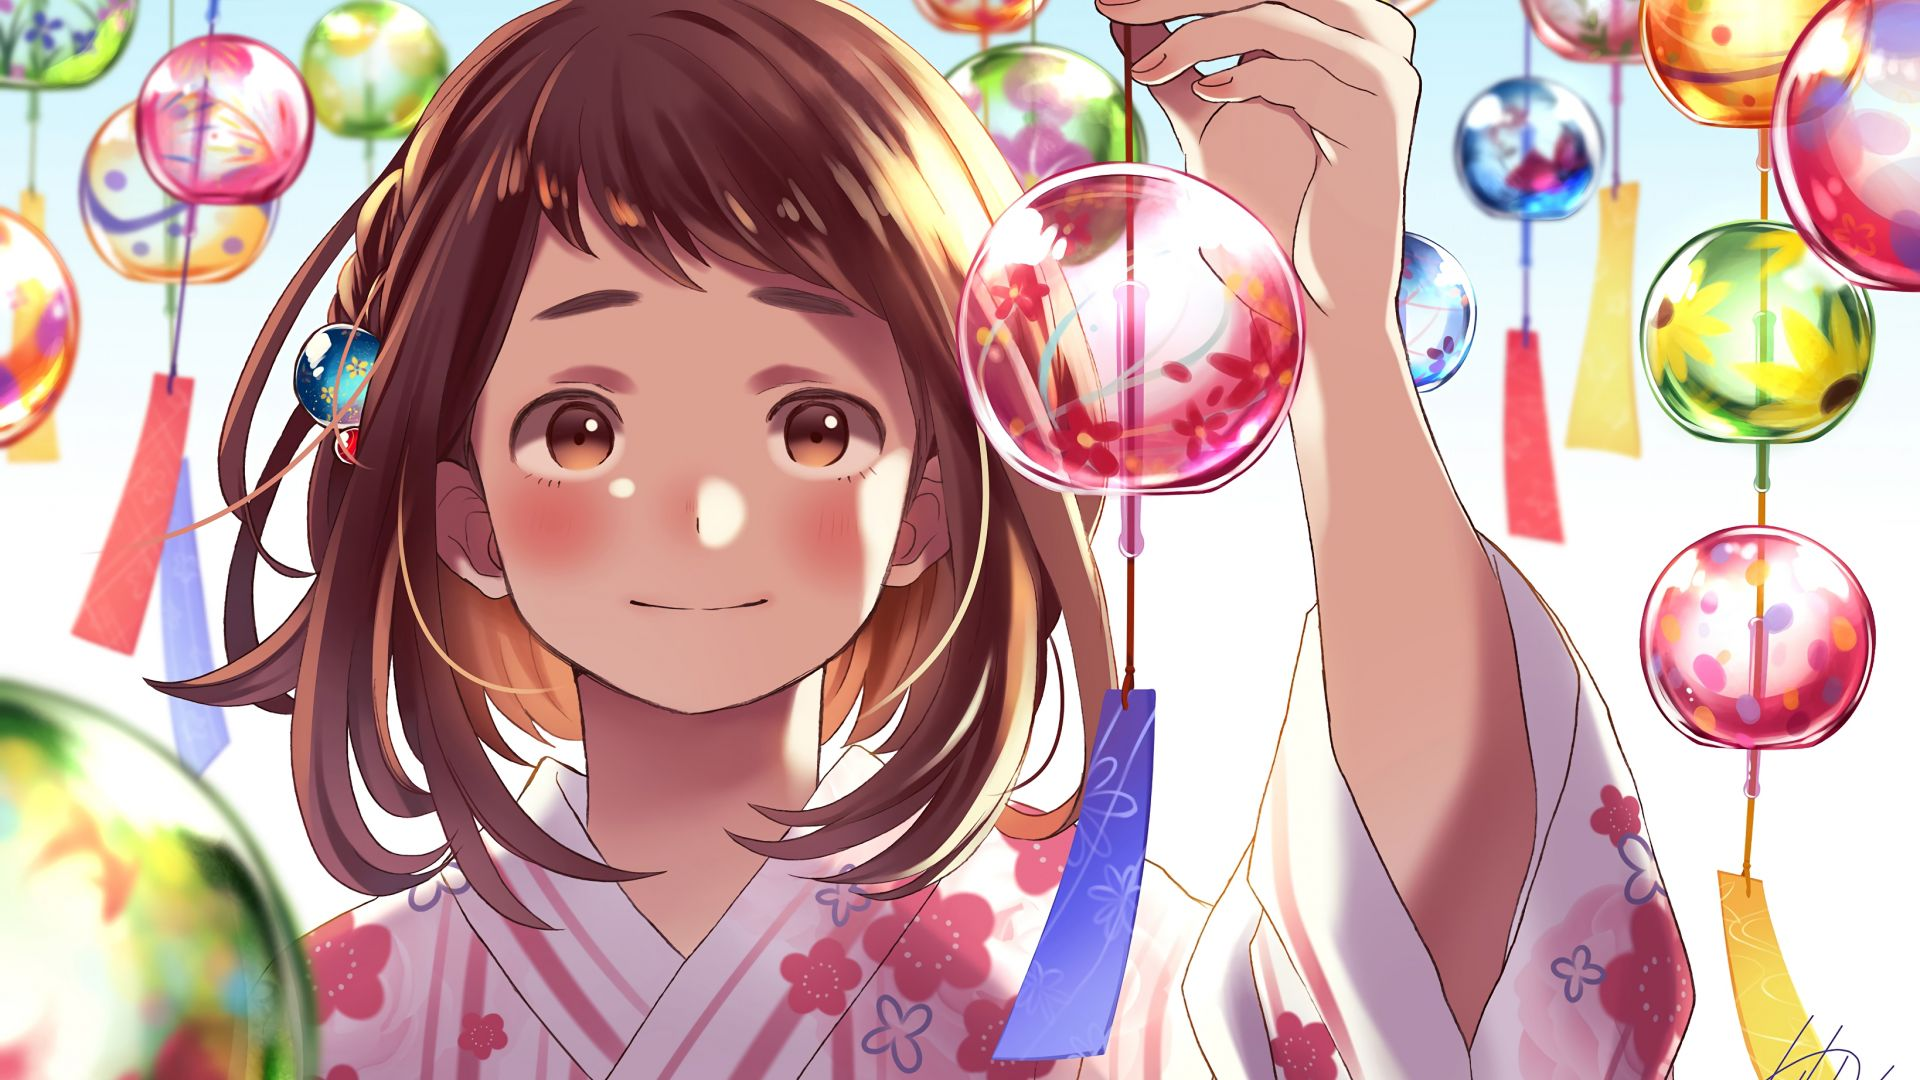 My hero academia wallpapers ,images ,backgrounds ,photos and pictures in 4k 5k 8k hd quality for computers, laptops, tablets and phones. Desktop Wallpaper Cute Anime, Ochako Uraraka, Decorations ...